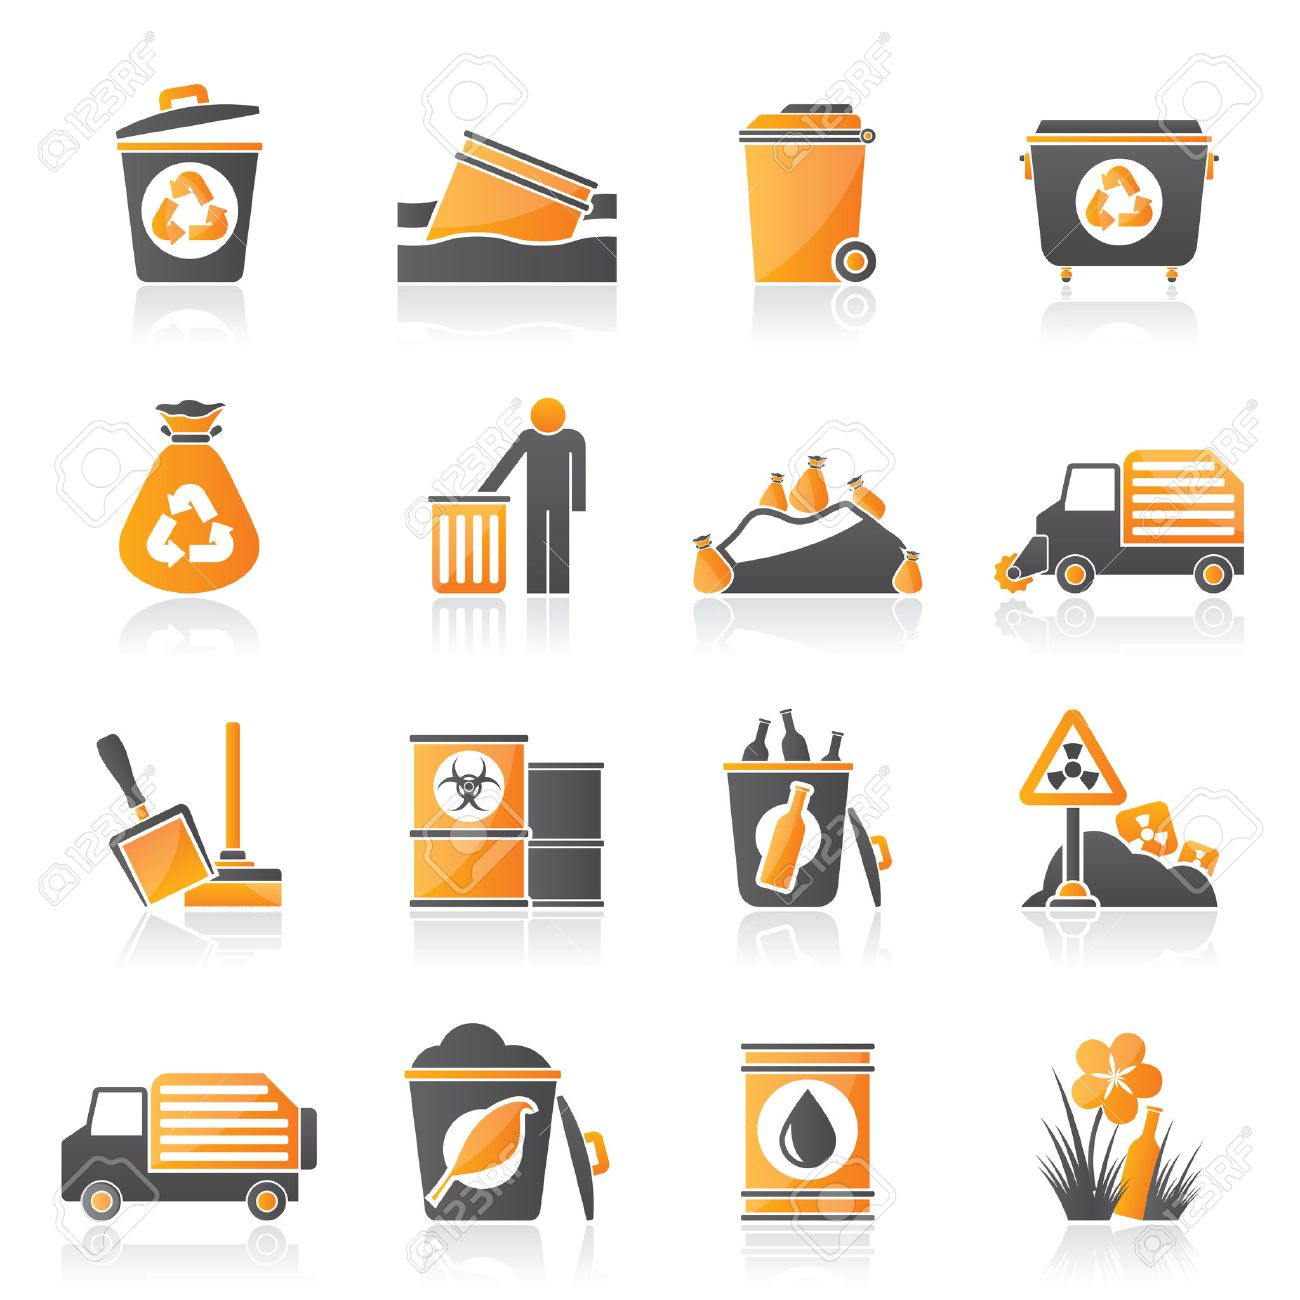 Garbage and rubbish icons - vector icon set Stock Vector - 23241315